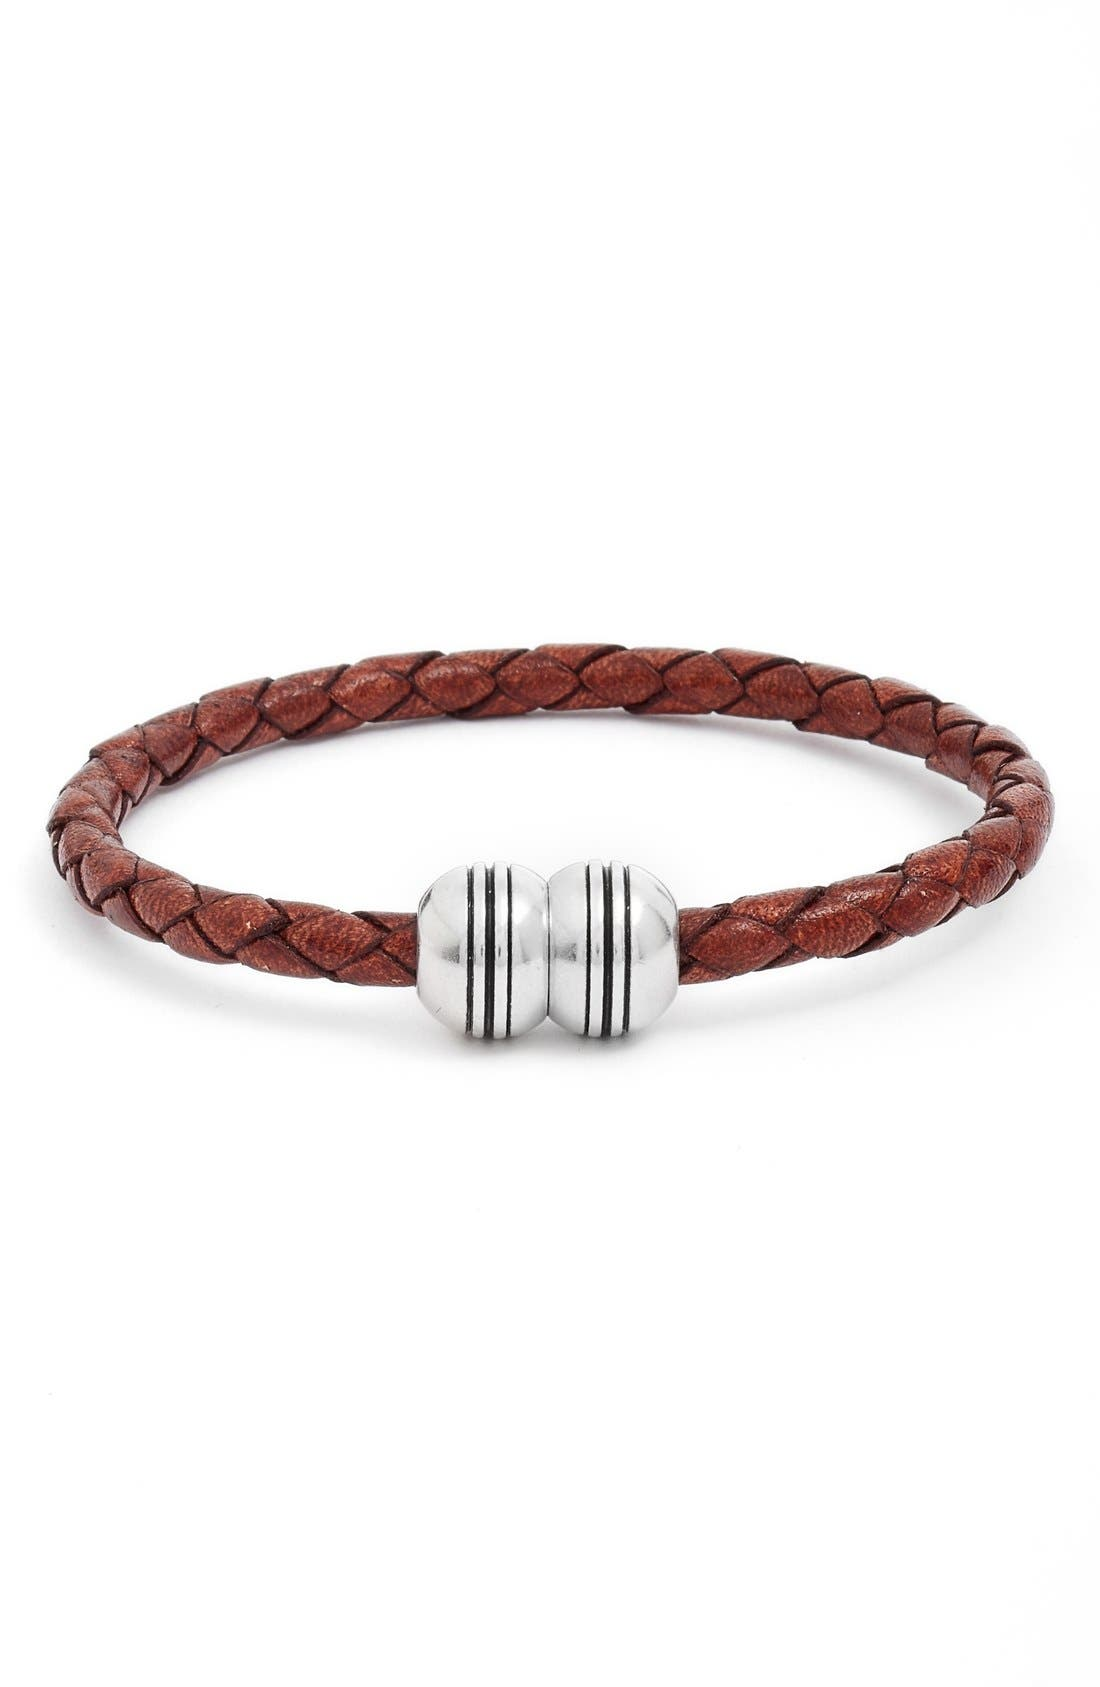 Braided Leather Bracelet,                         Main,                         color, Whiskey